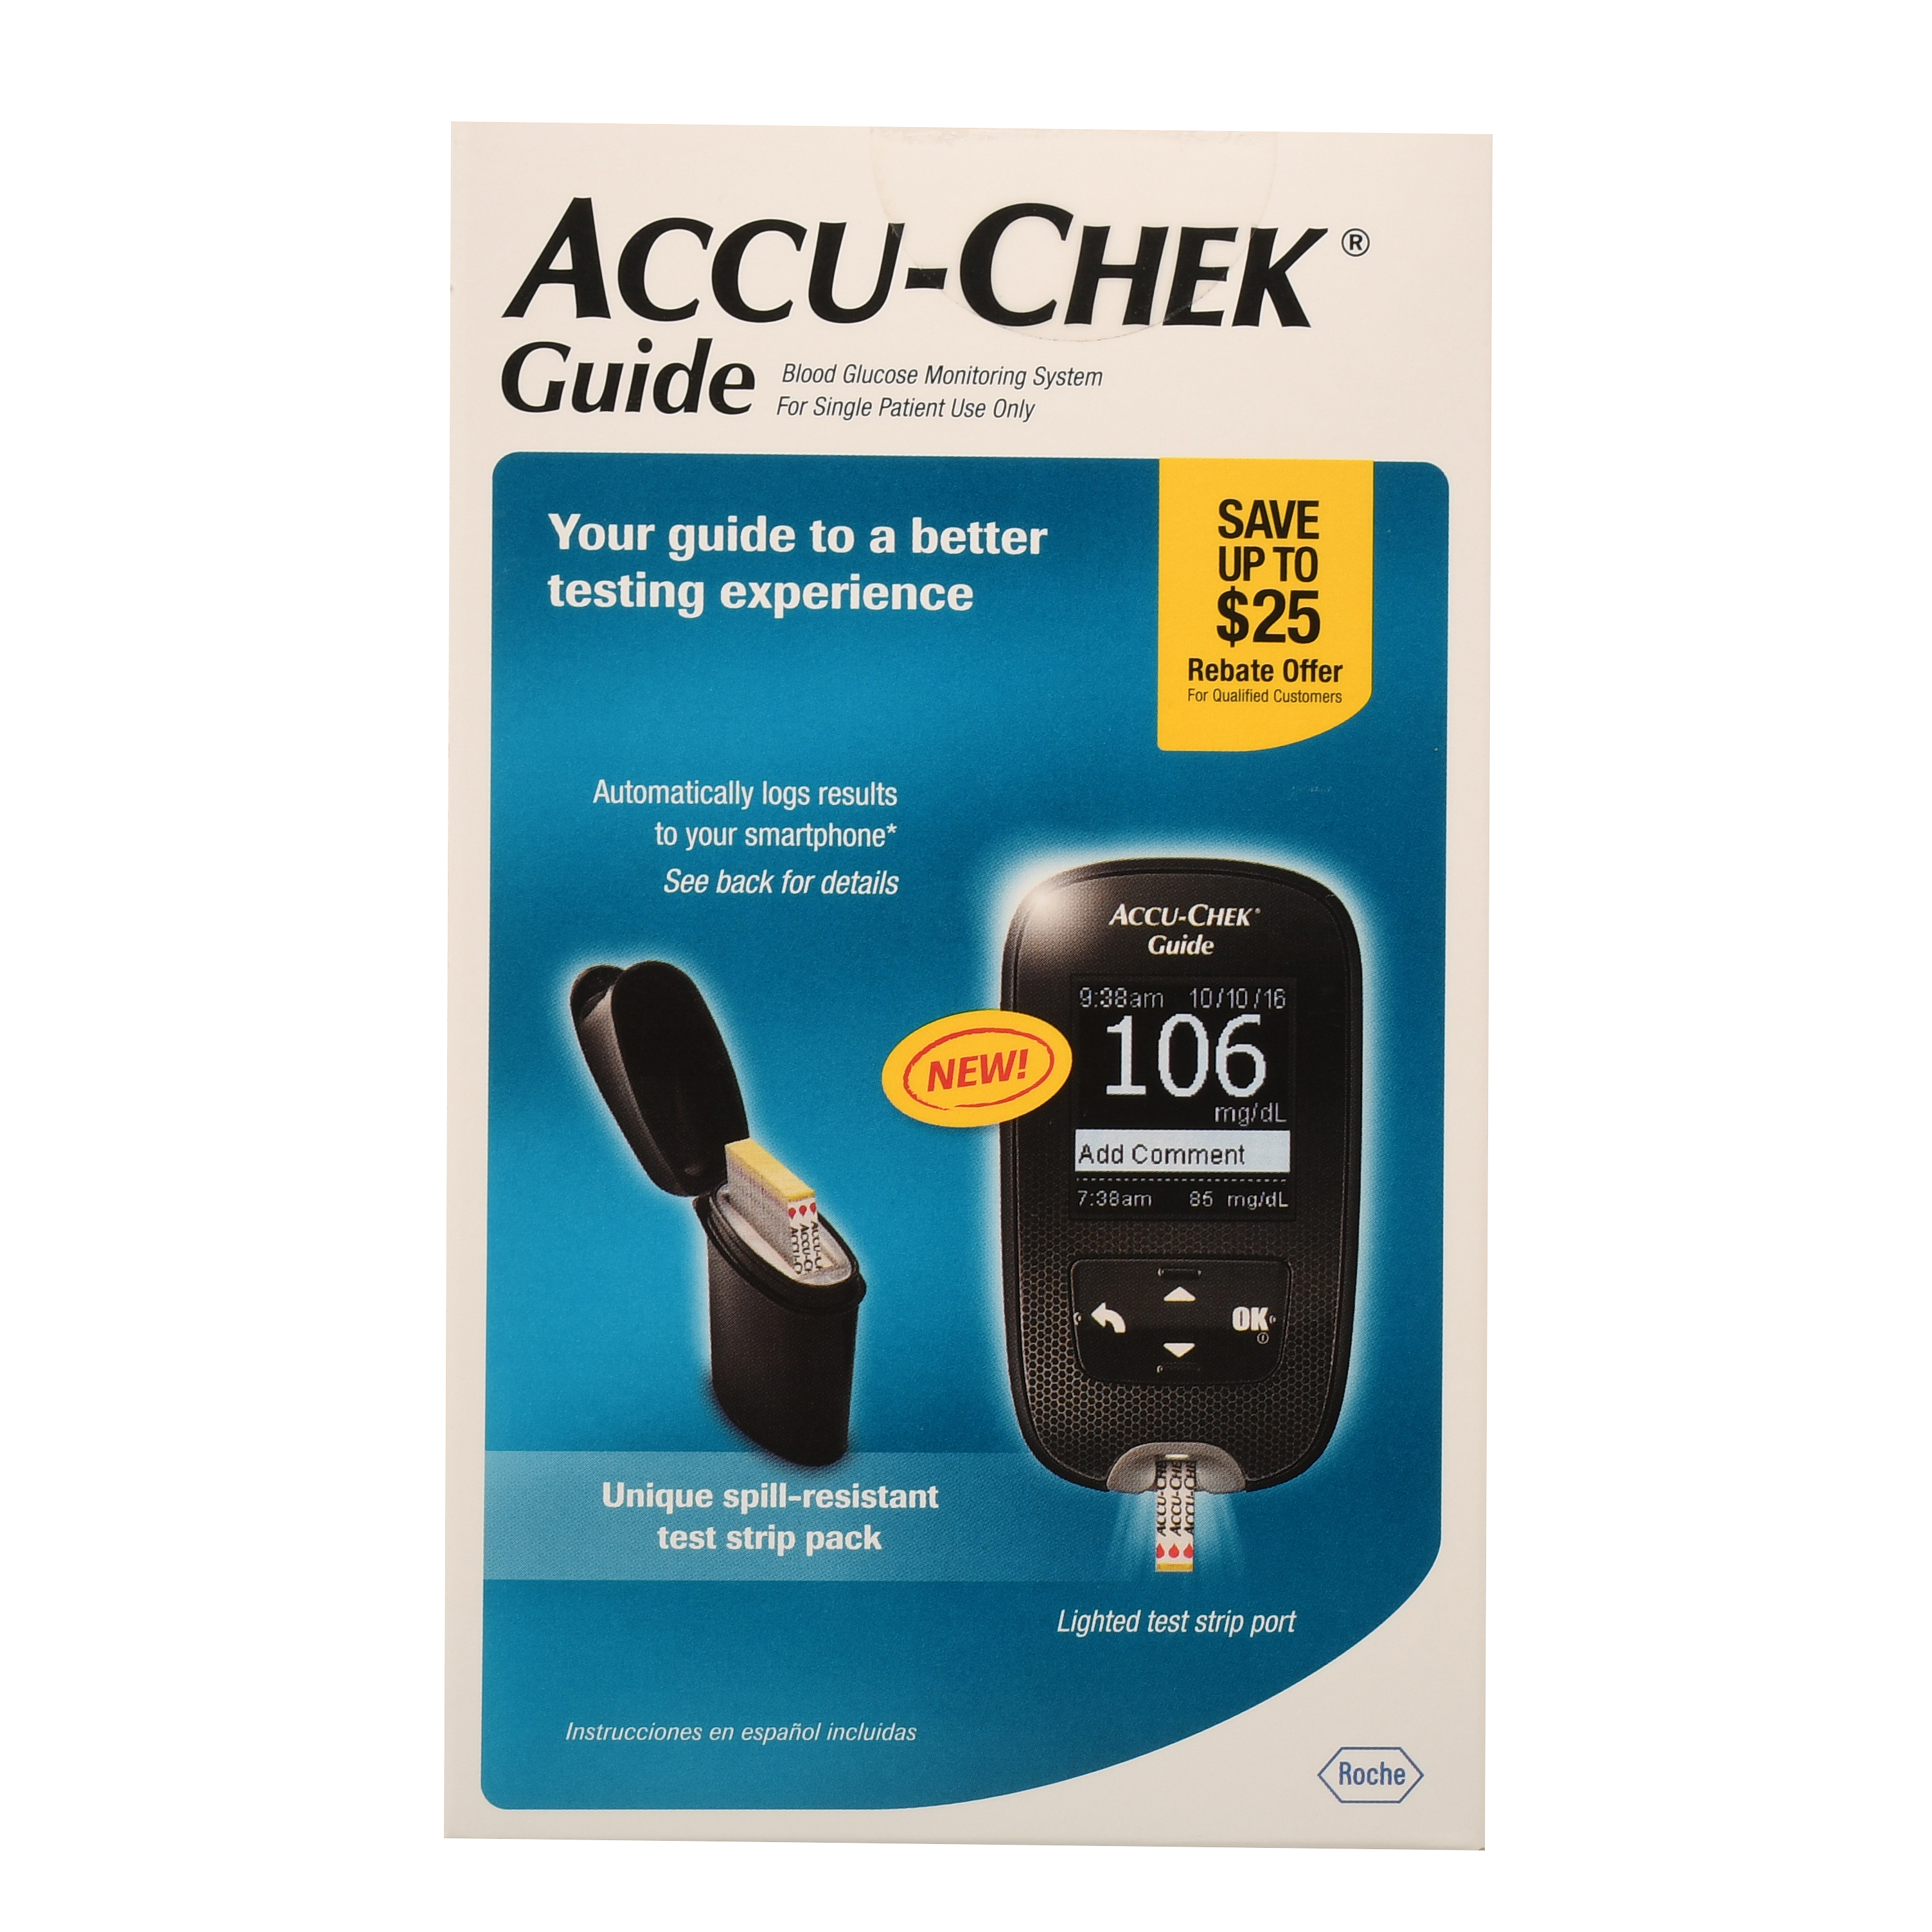 ACCU-CHEK Guide Blood Glucose Monitoring System 1 ea